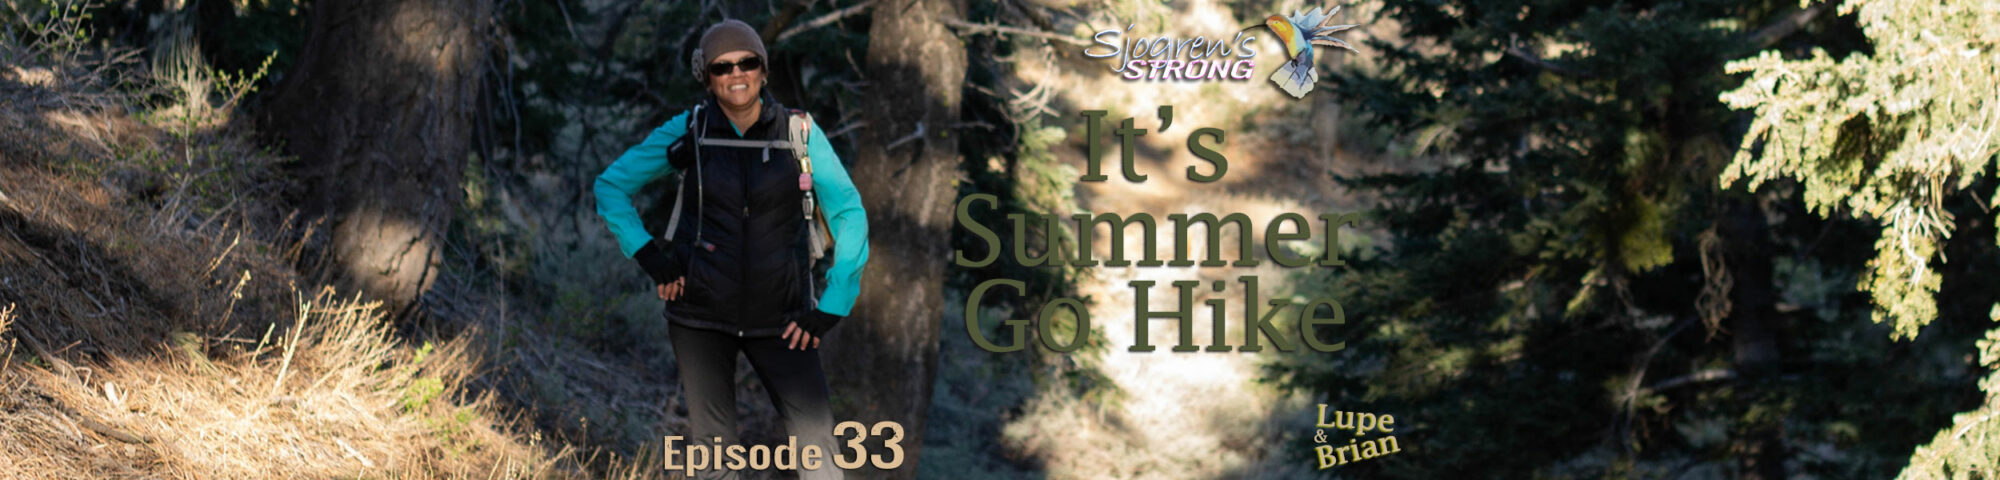 It's Summer, Go Hike, Episode 33 on Sjogren's Strong